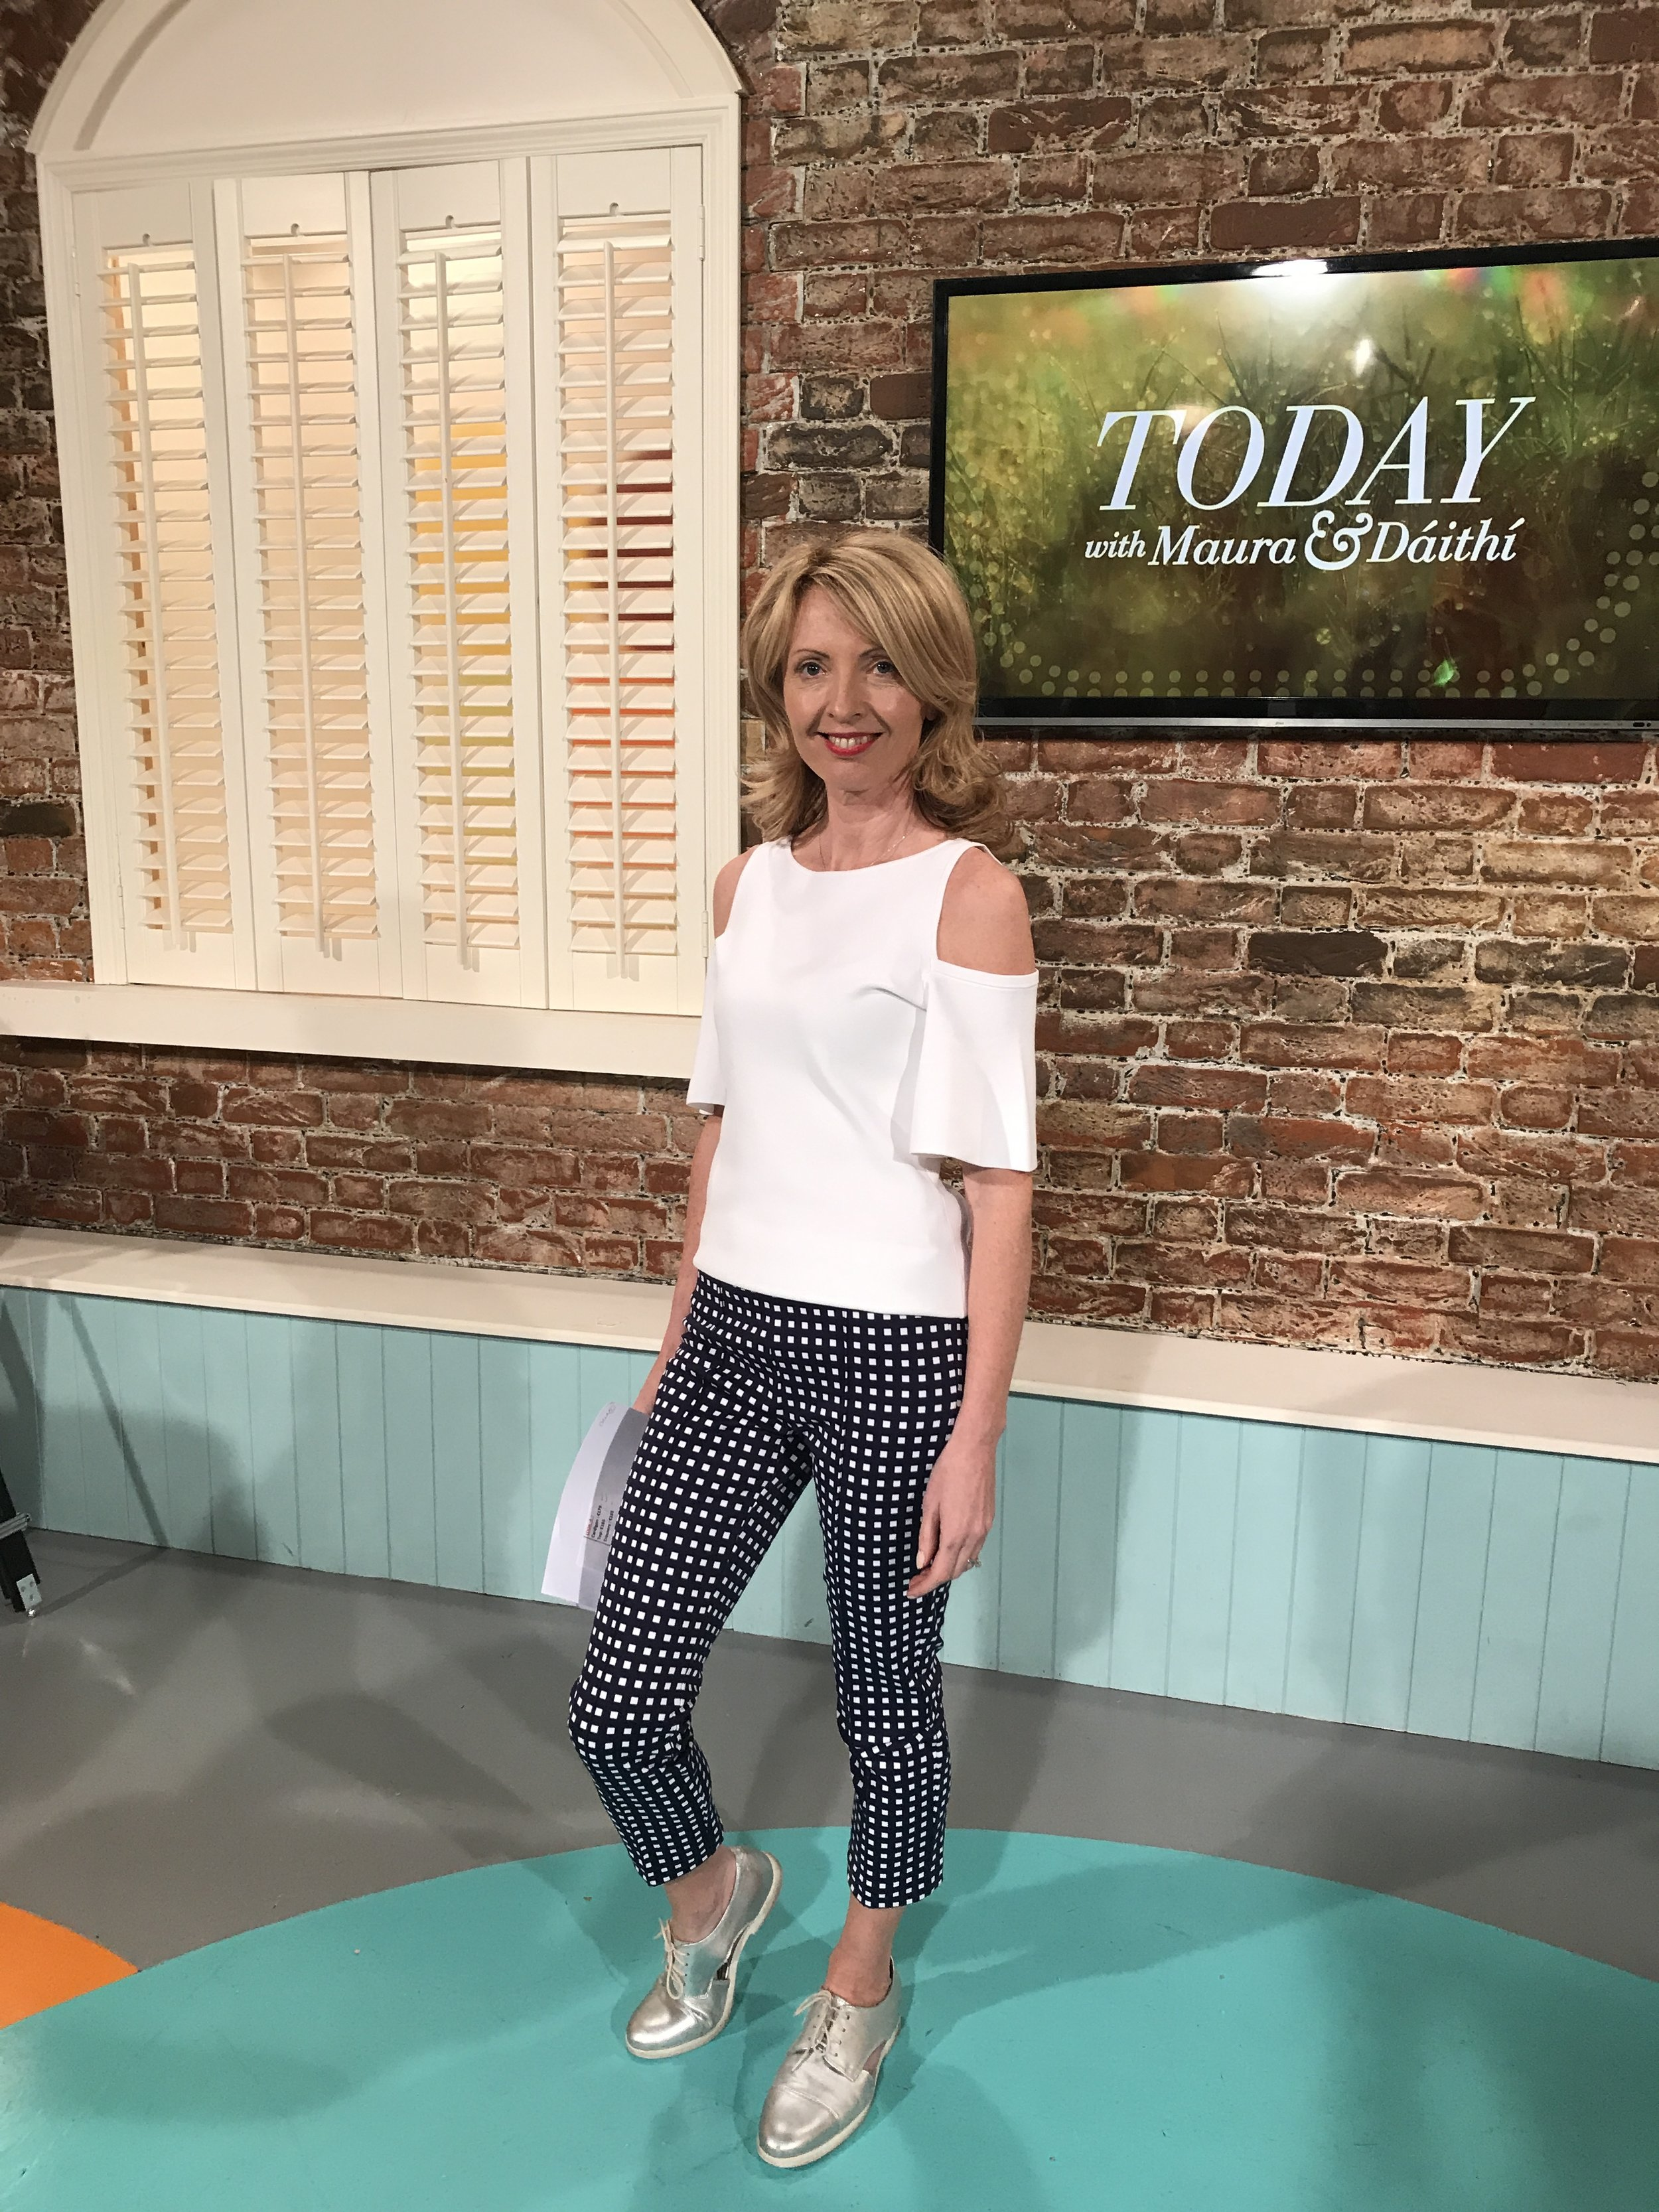 The white Michael Kors cut out (cold shoulder) jumper is very much a trend, but the cigarette pants are timeless (think Marilyn Monroe below) - and together with silver shoes they make a statement ! (Look by MacBees Killarney as seen on RTE Today)